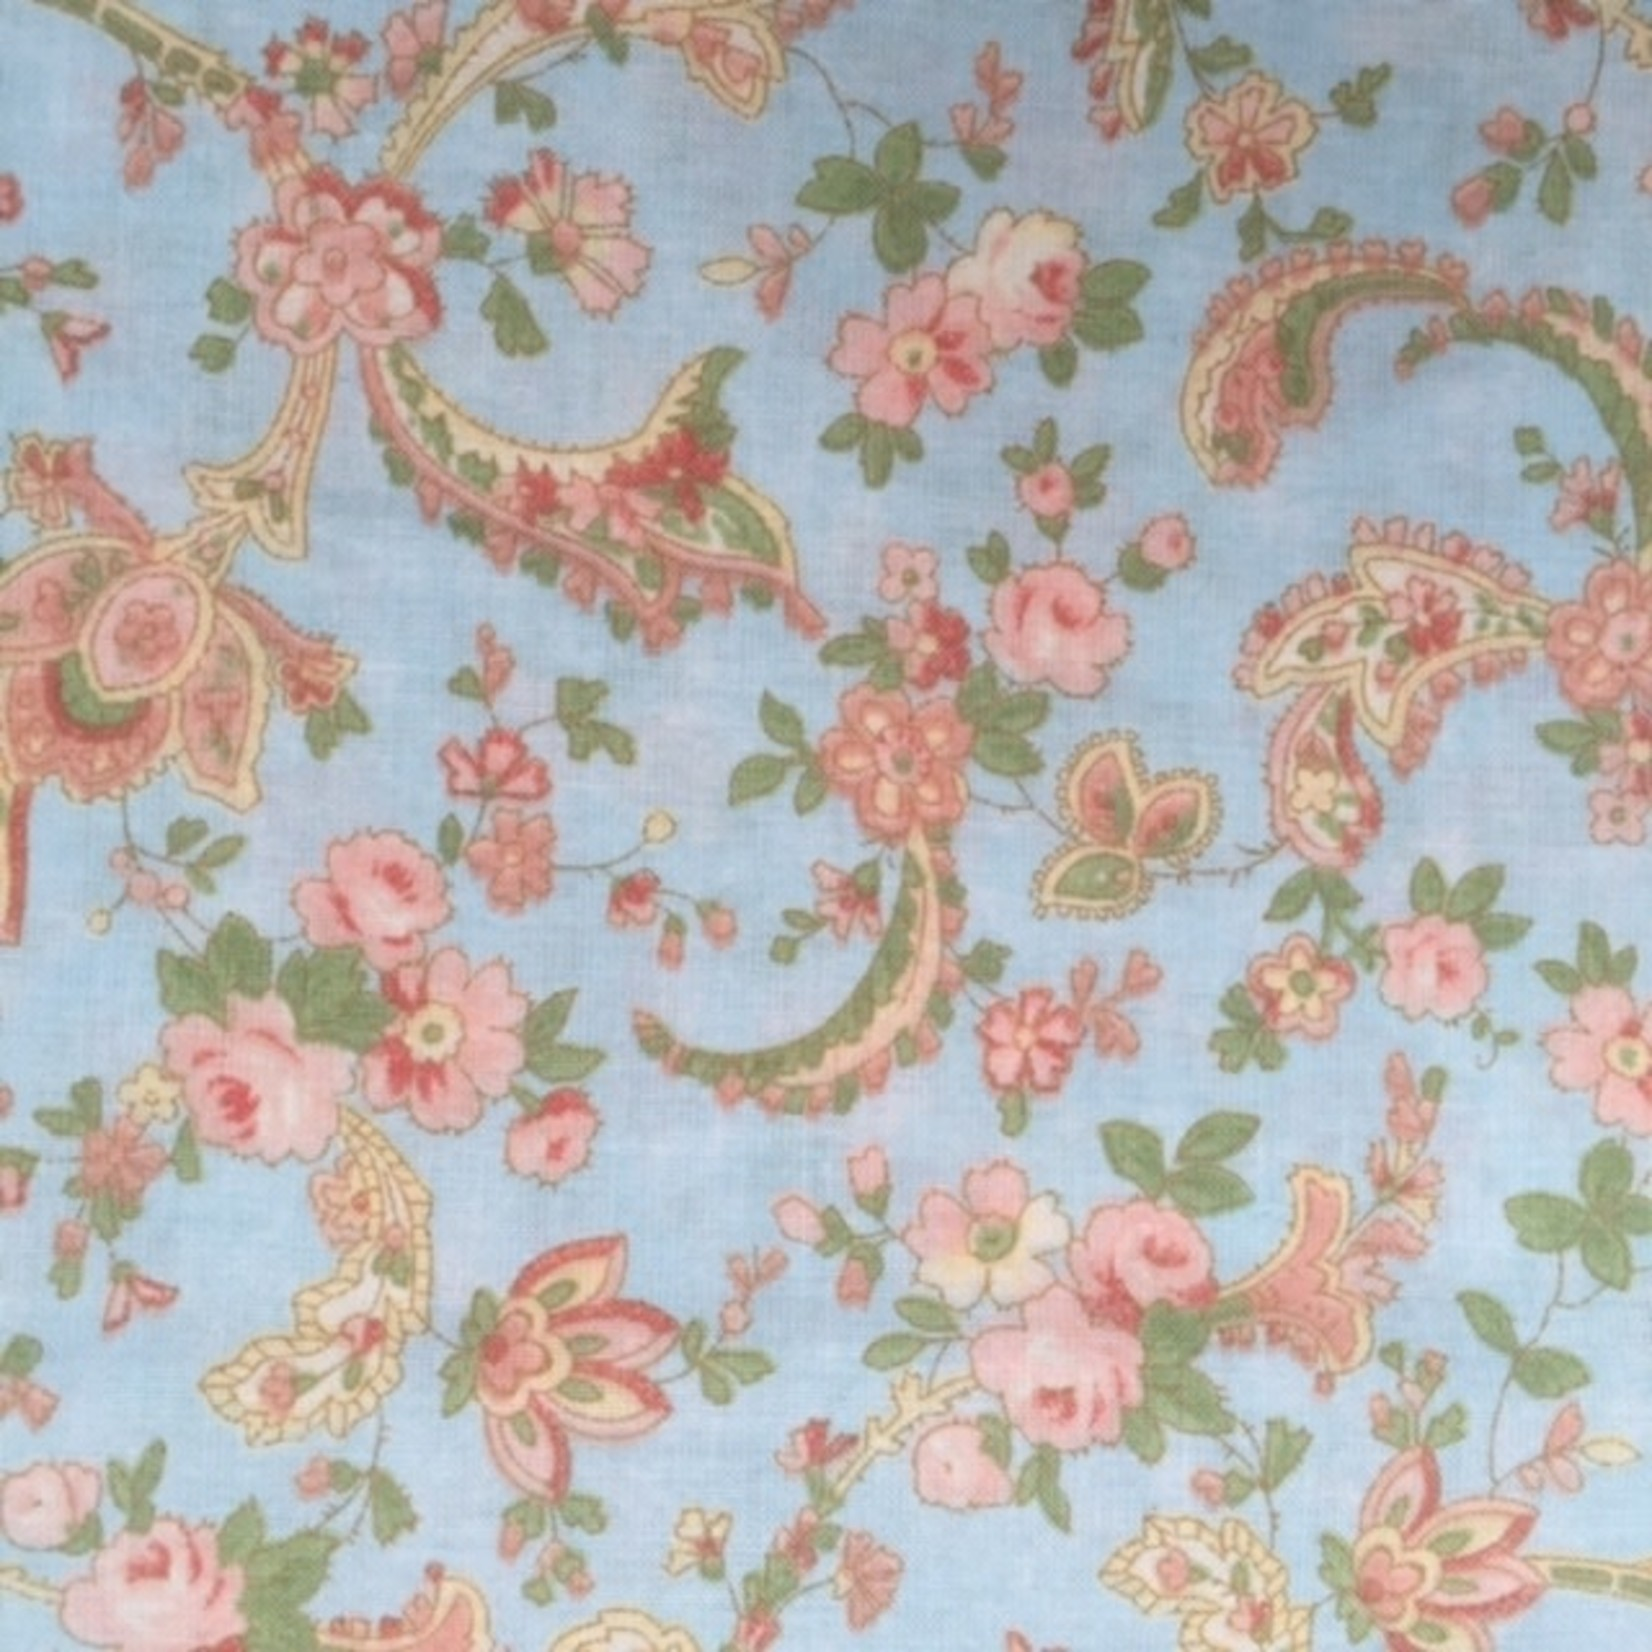 Moda 3 Sisters - Faded Memories - Floral Blue